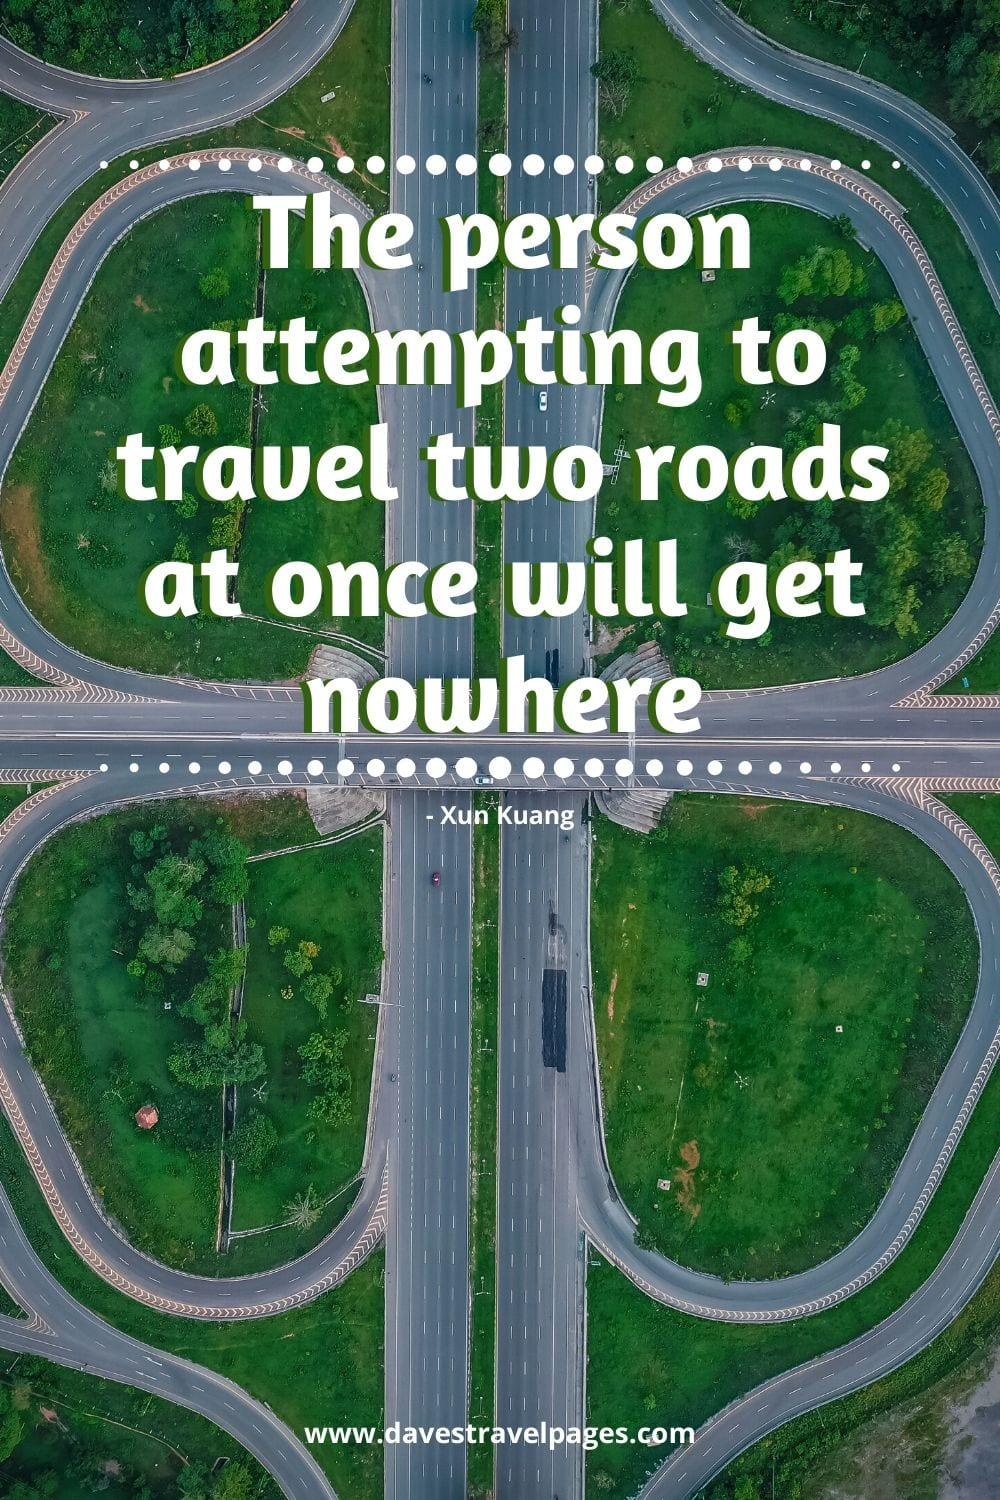 Road trip quotes - The person attempting to travel two roads at once will get nowhere. Xun Kuang